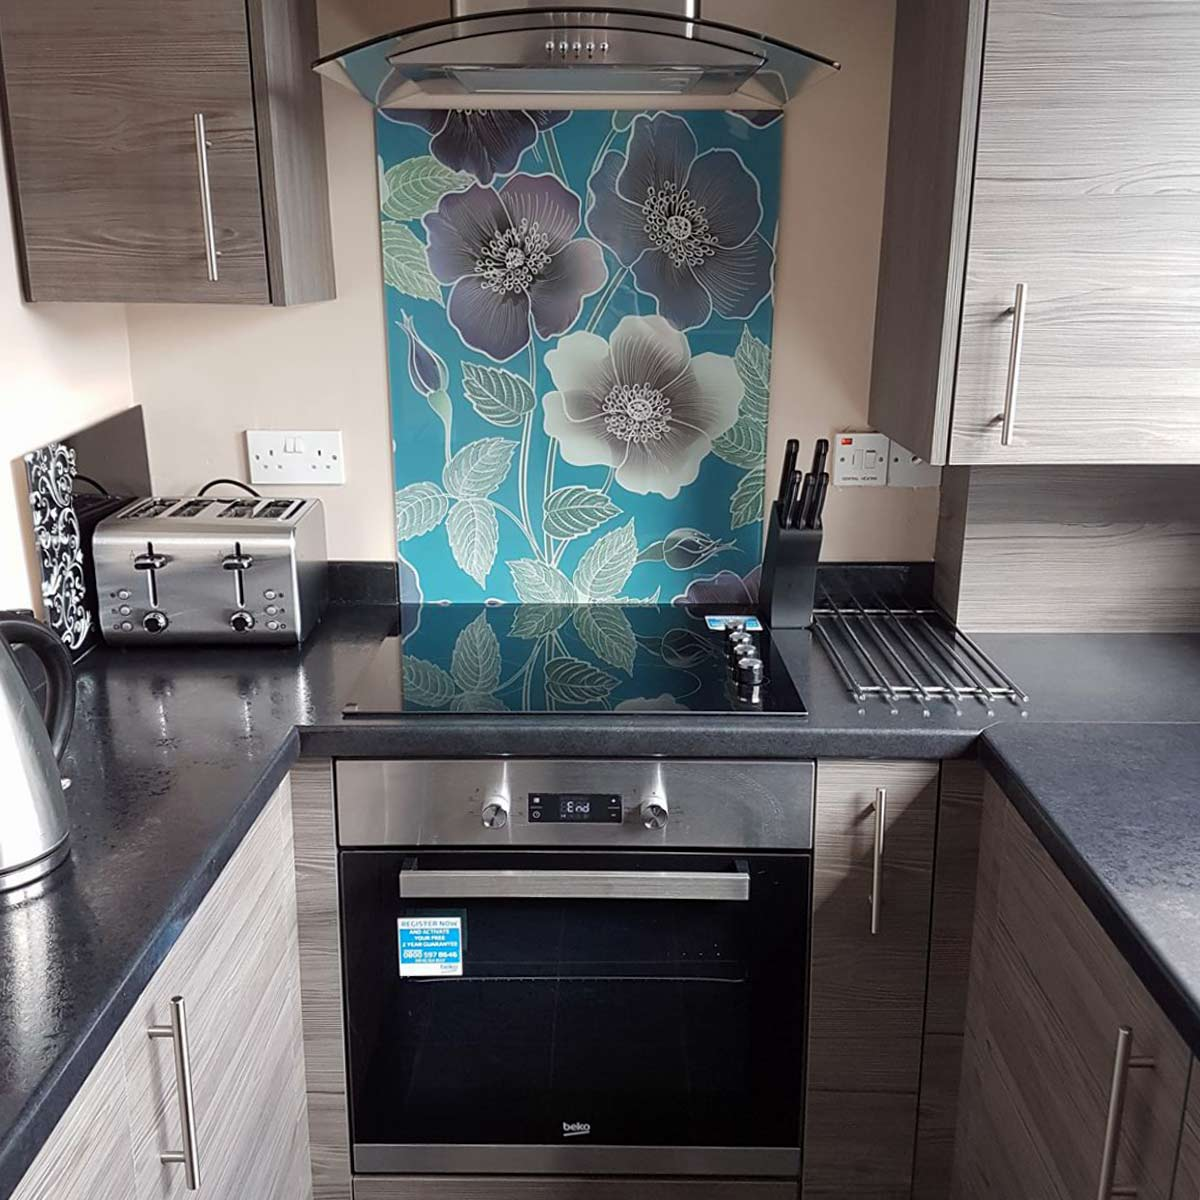 Splashback Reviews - How Did We Do by You? | For The Floor & More